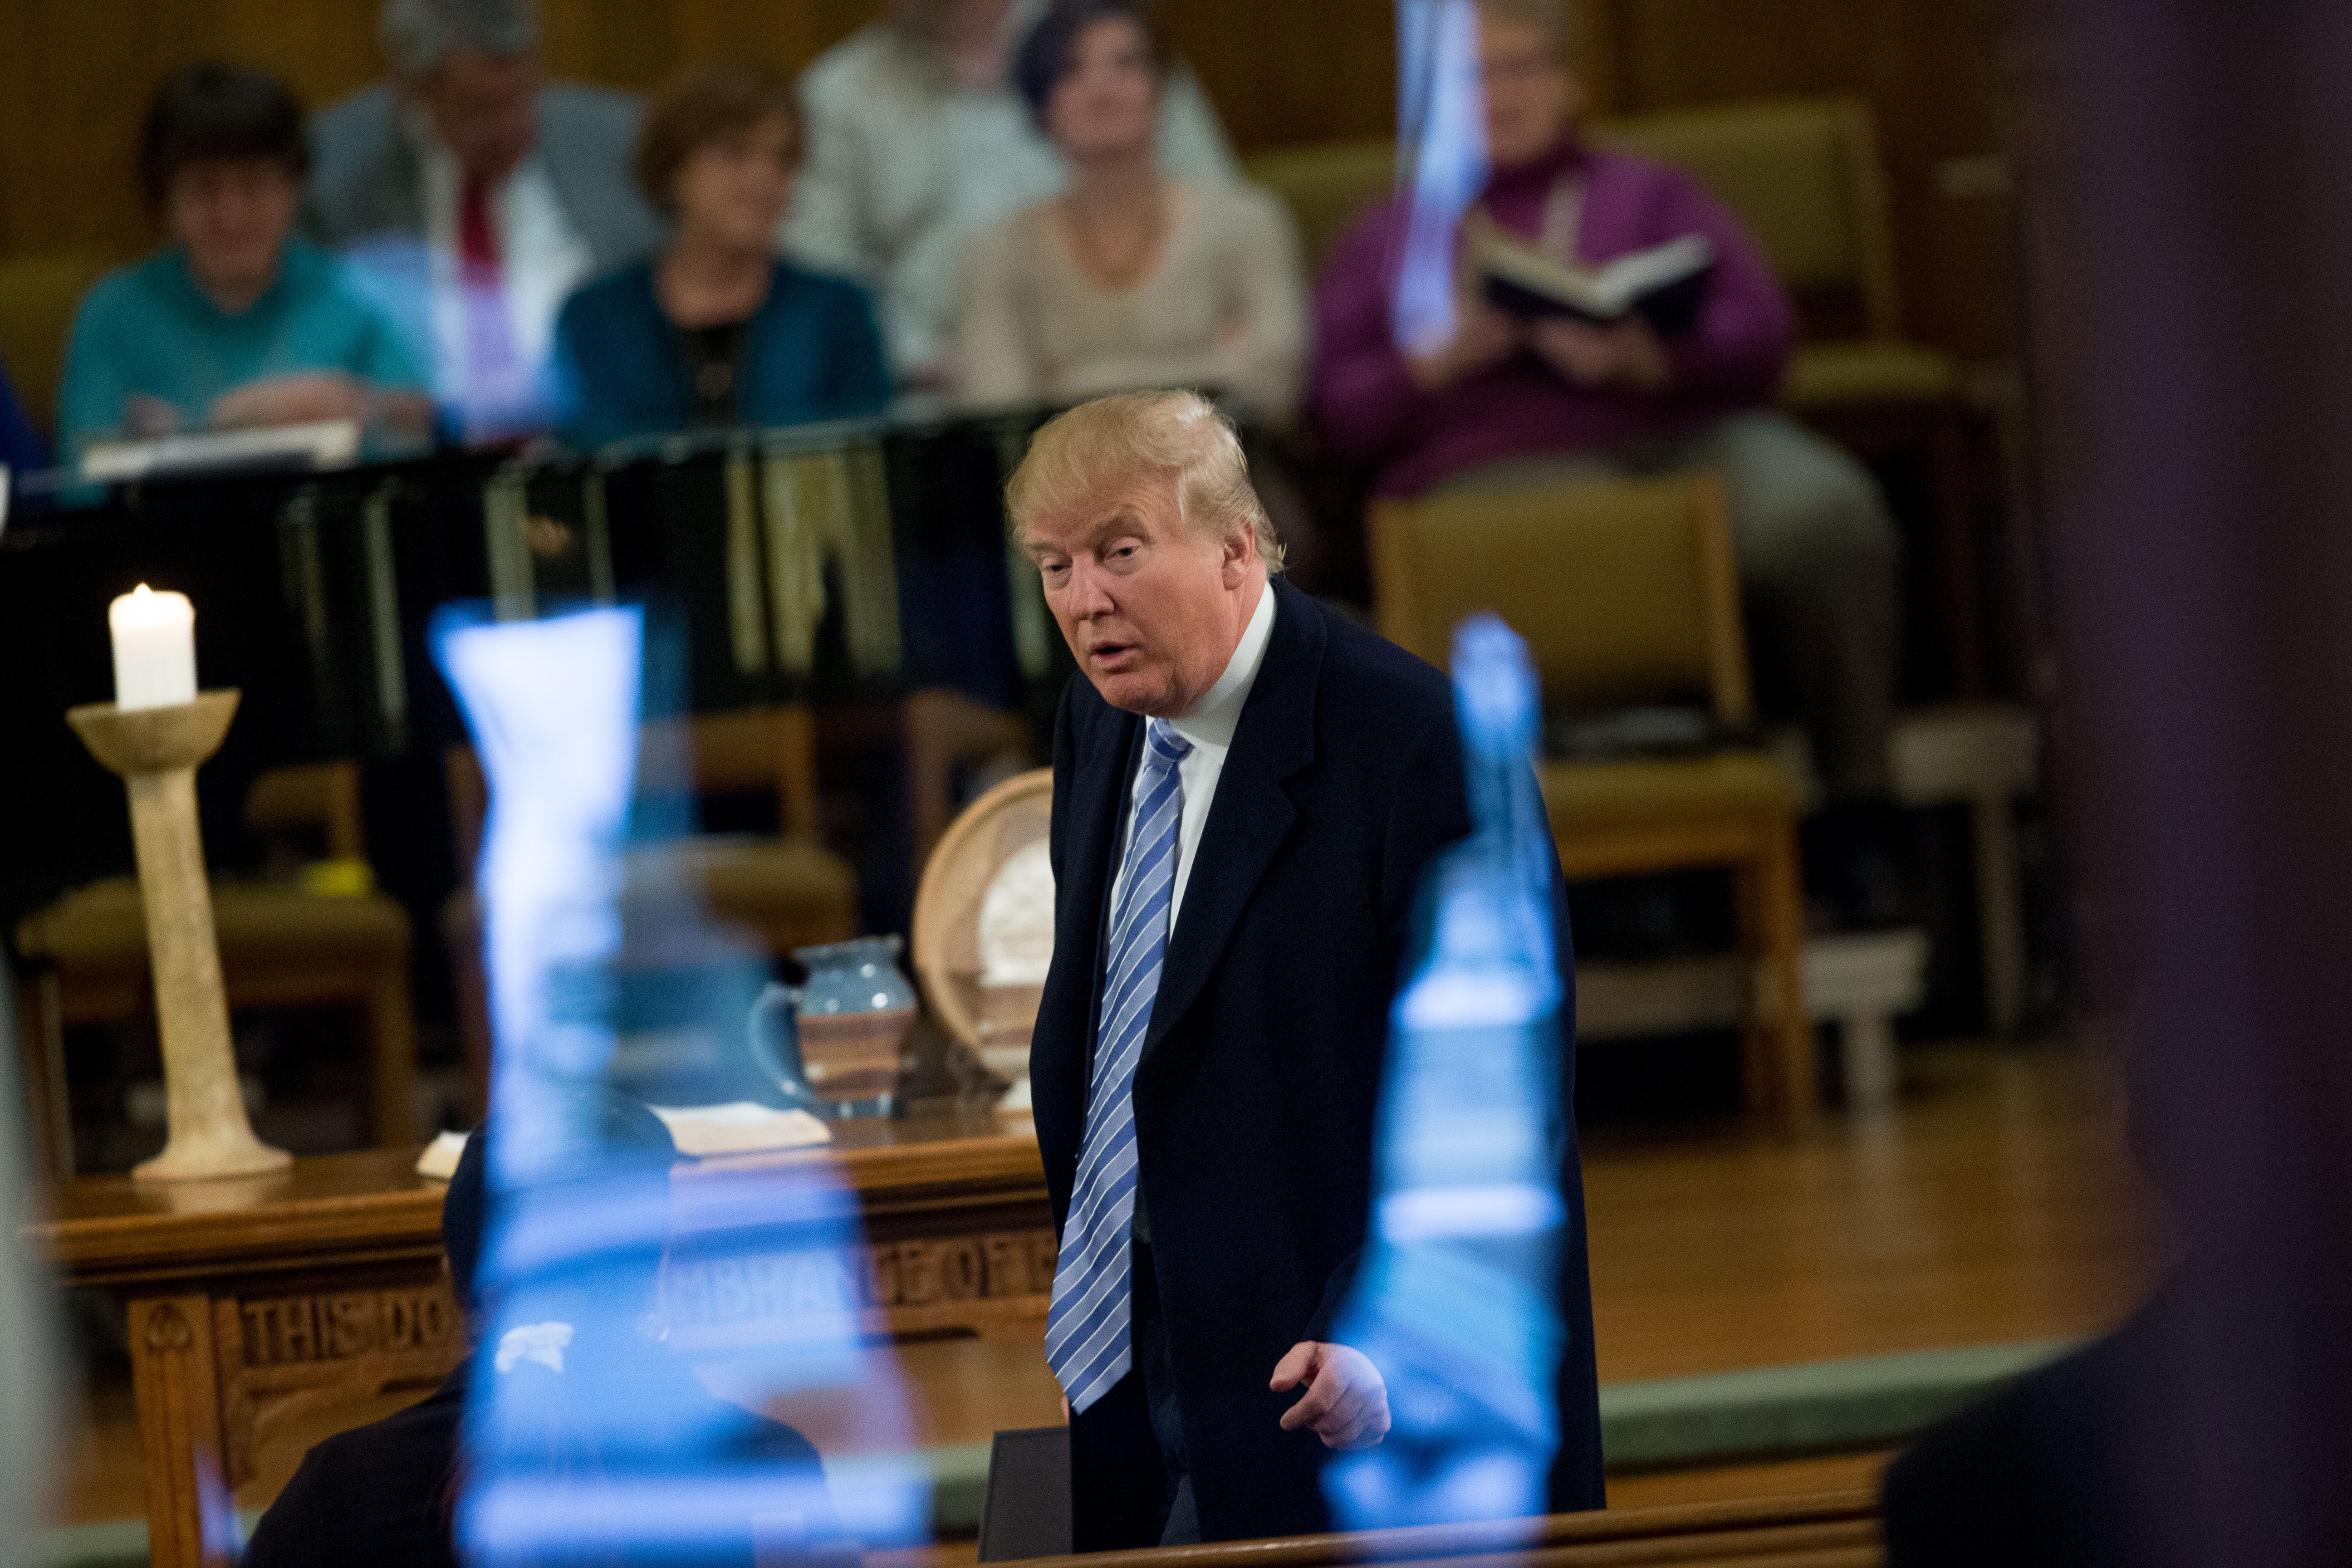 Republican presidential candidate Donald Trump arrives for service at First Presbyterian Church in Muscatine, Iowa, Sunday, Jan. 24, 2016.